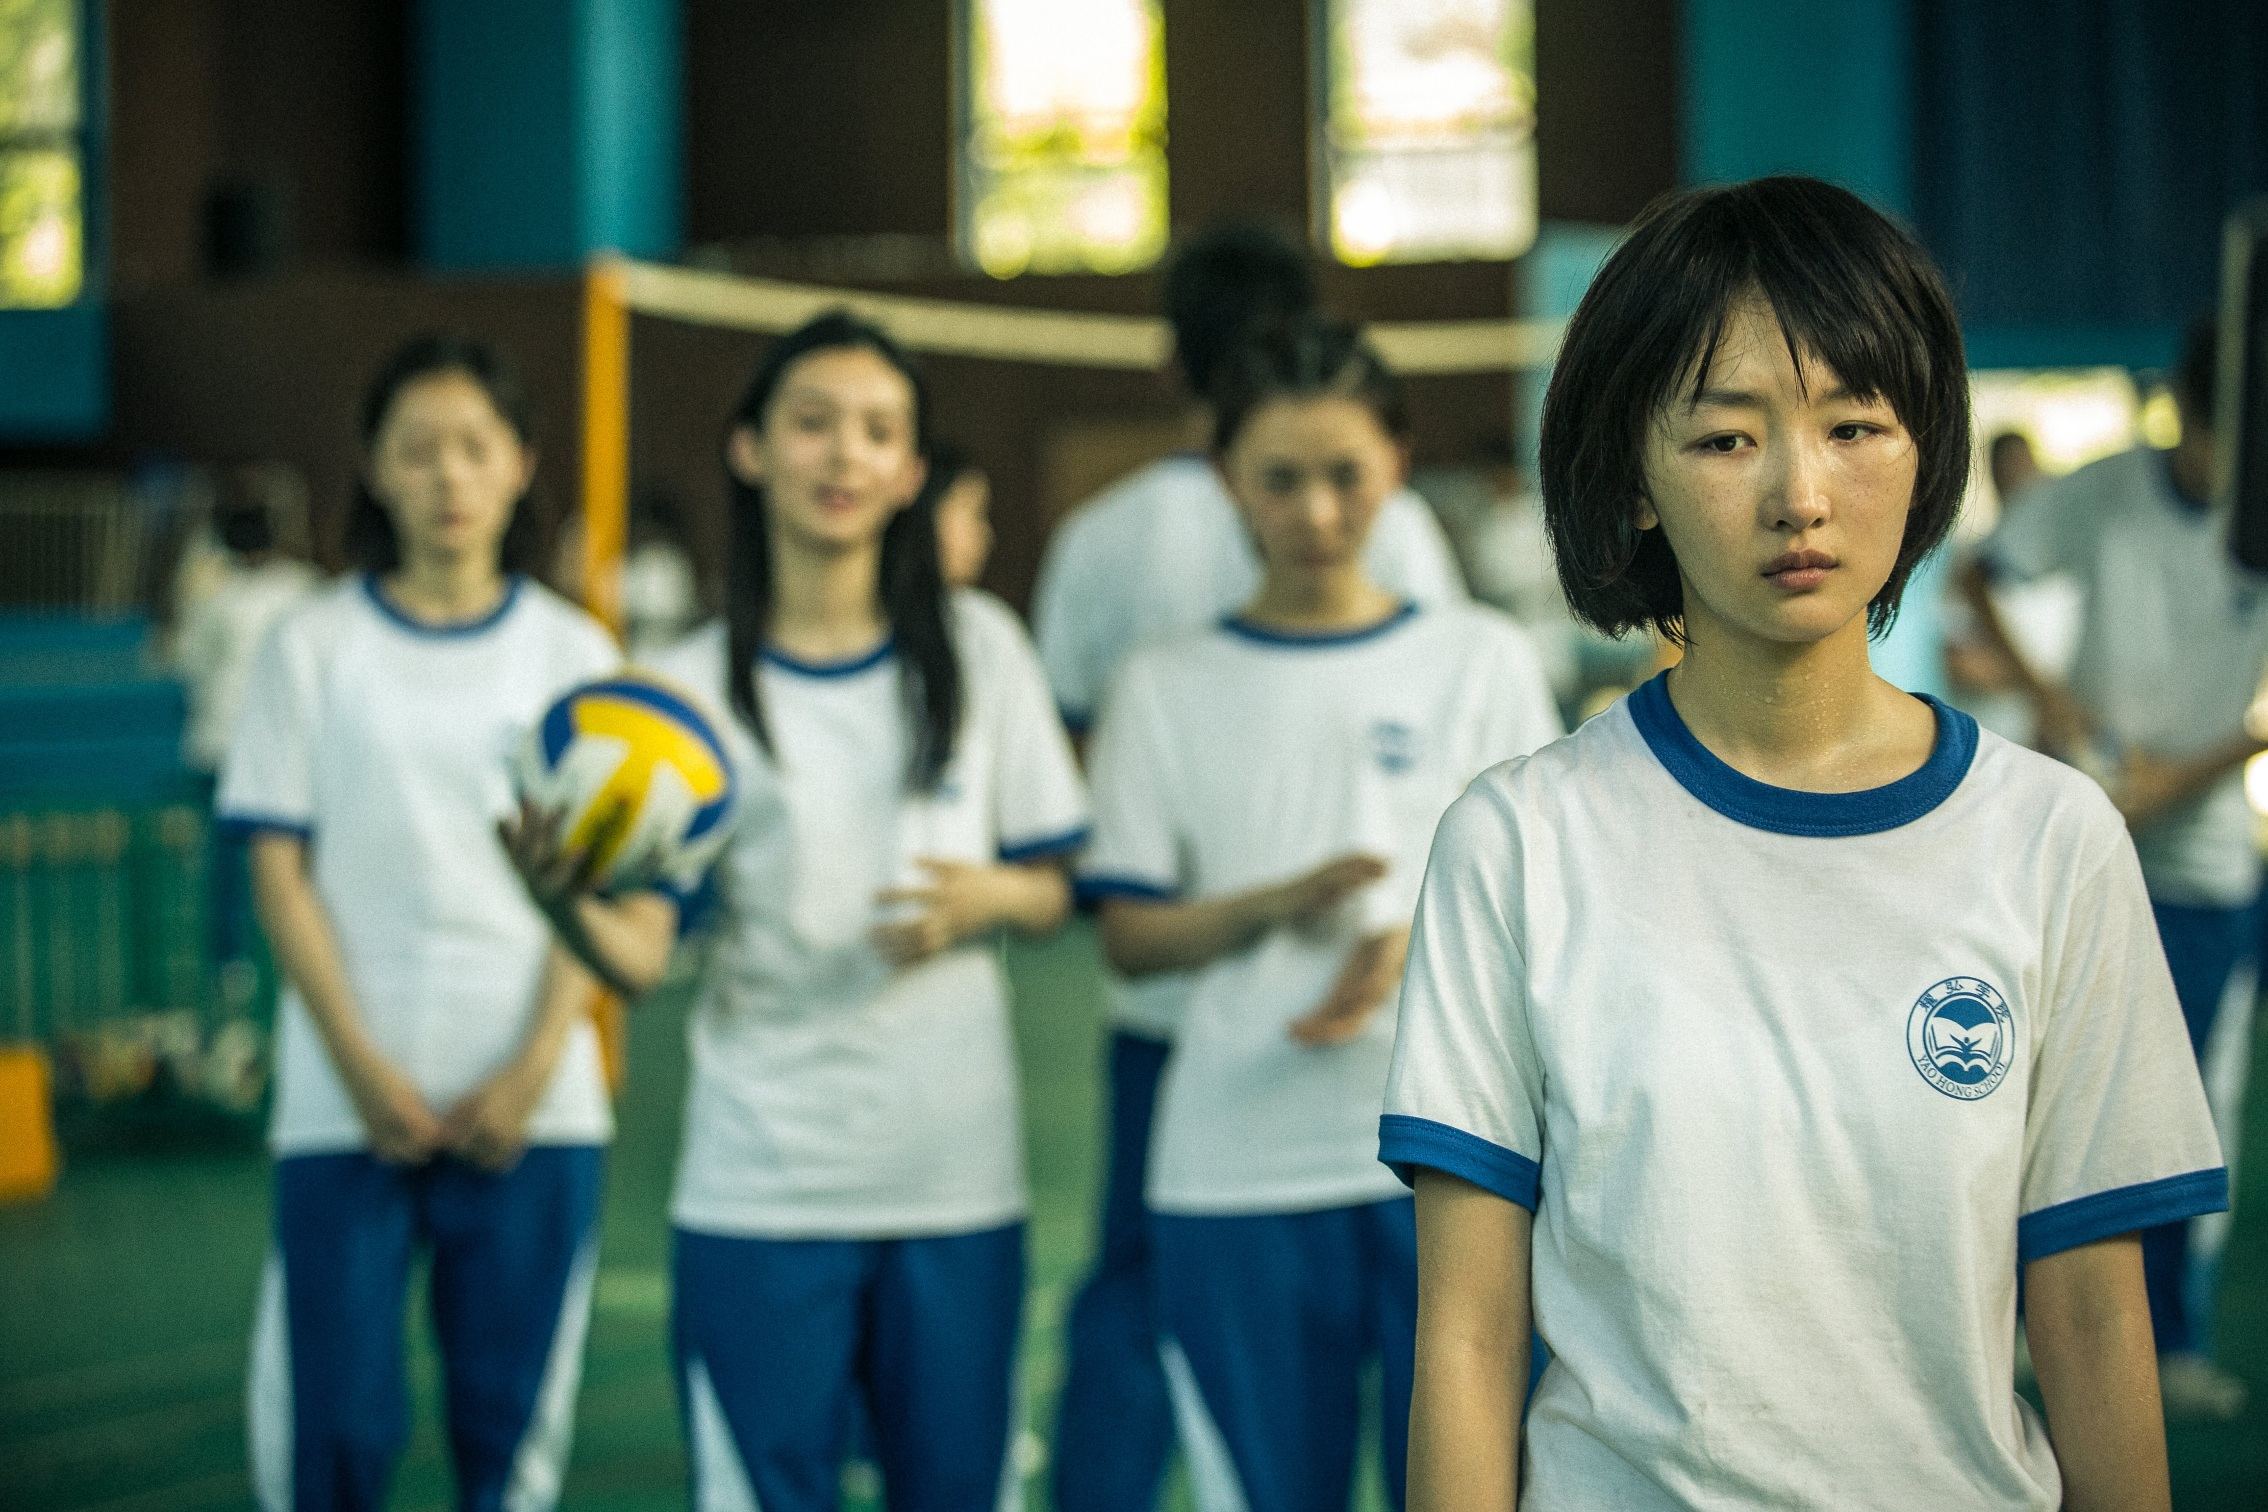 Il Far East Film Festival 22 incorona la Cina: Gelso d'Oro a Better Days